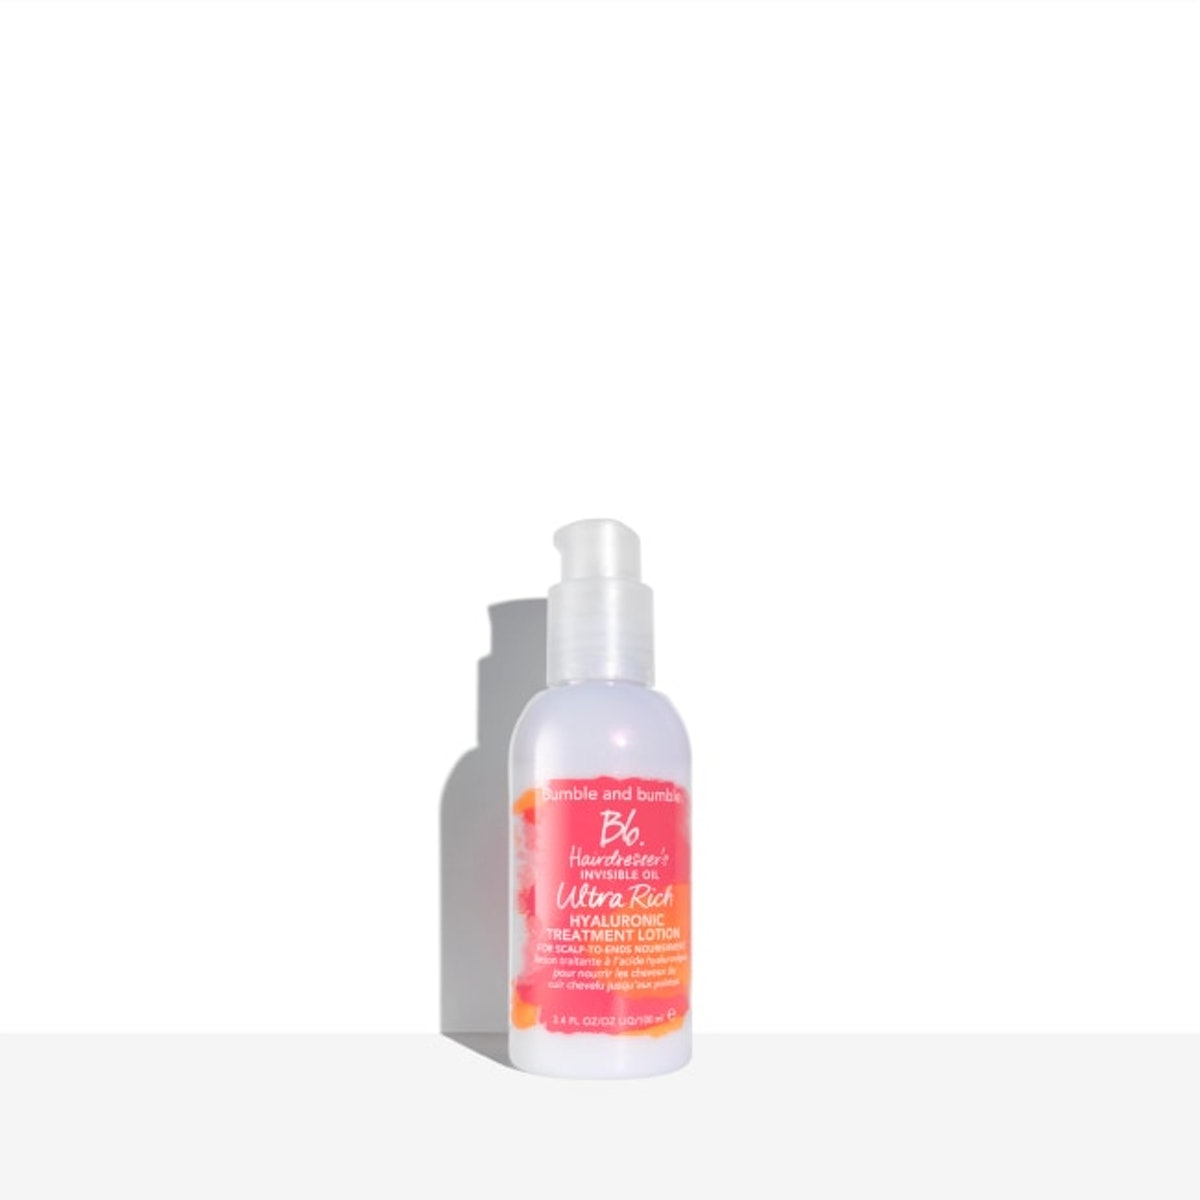 Hairdresser's Invisible Oil Ultra Rich Hyaluronic Treatment Lotion